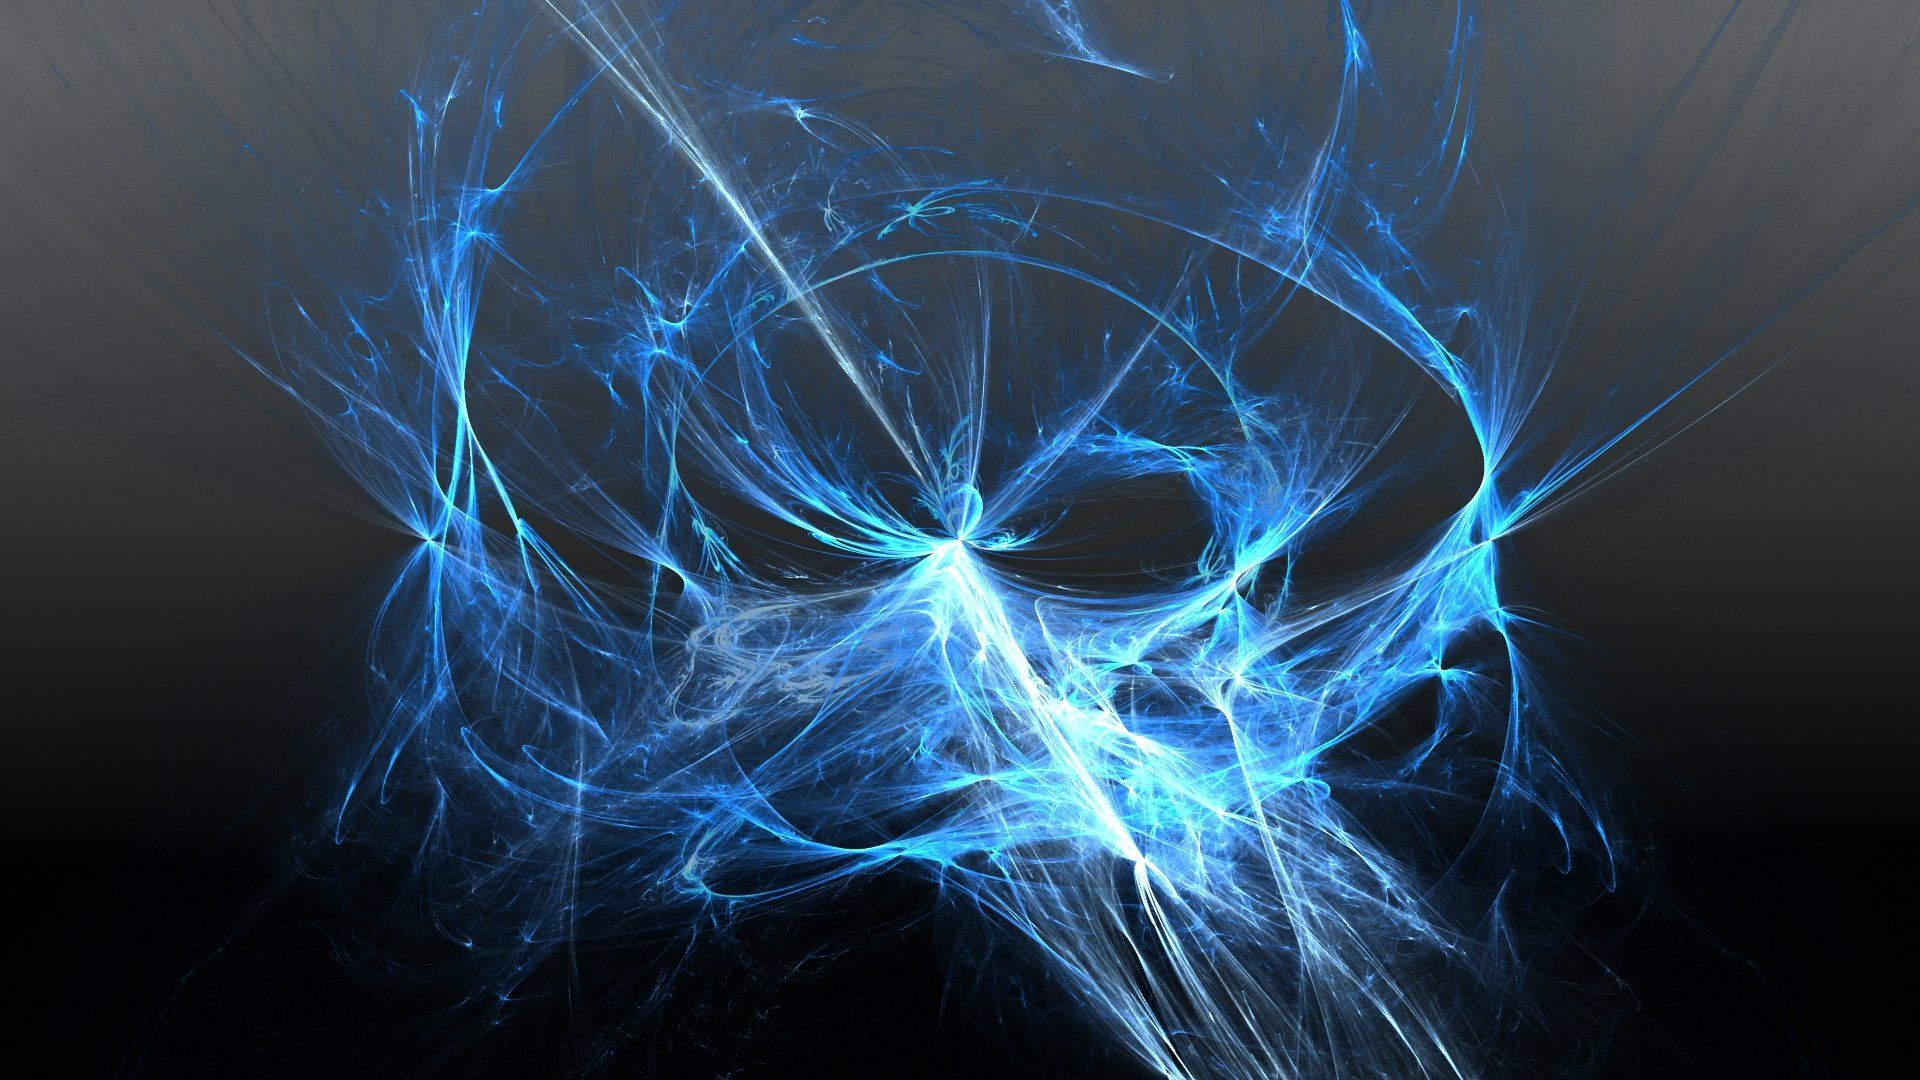 blue skull live wallpaper android apps on google play 1920a—1080 blue flames wallpapers